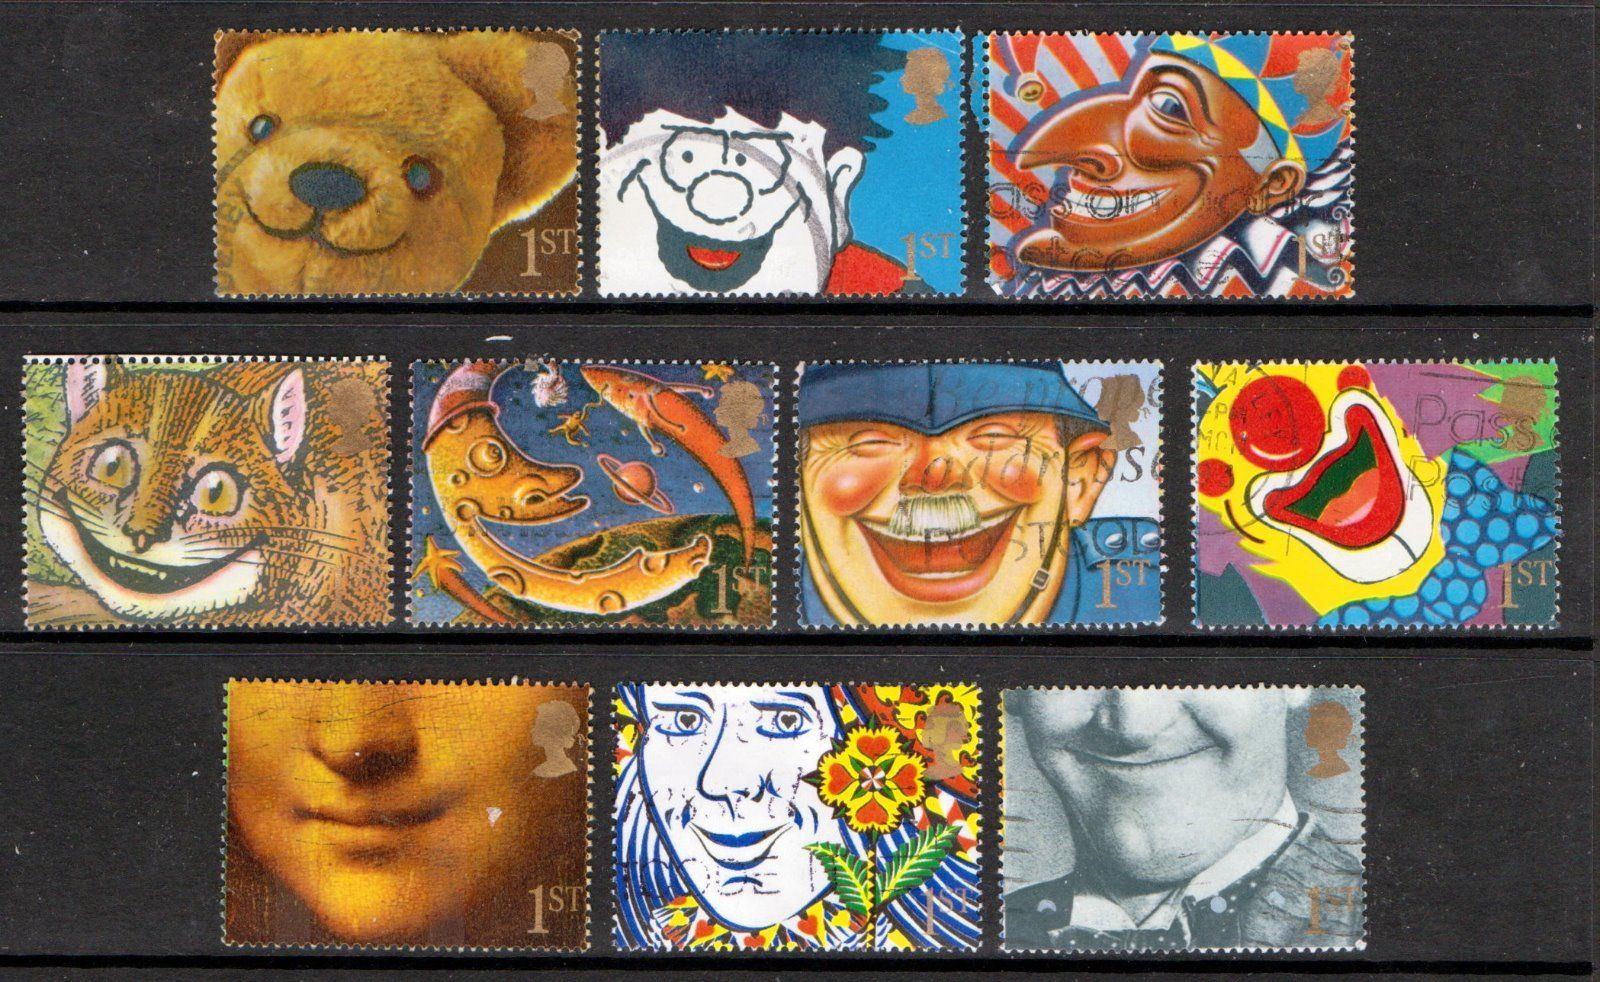 1991 GB - SG1550-59 - Greetings Smiles Singles (10) VFU